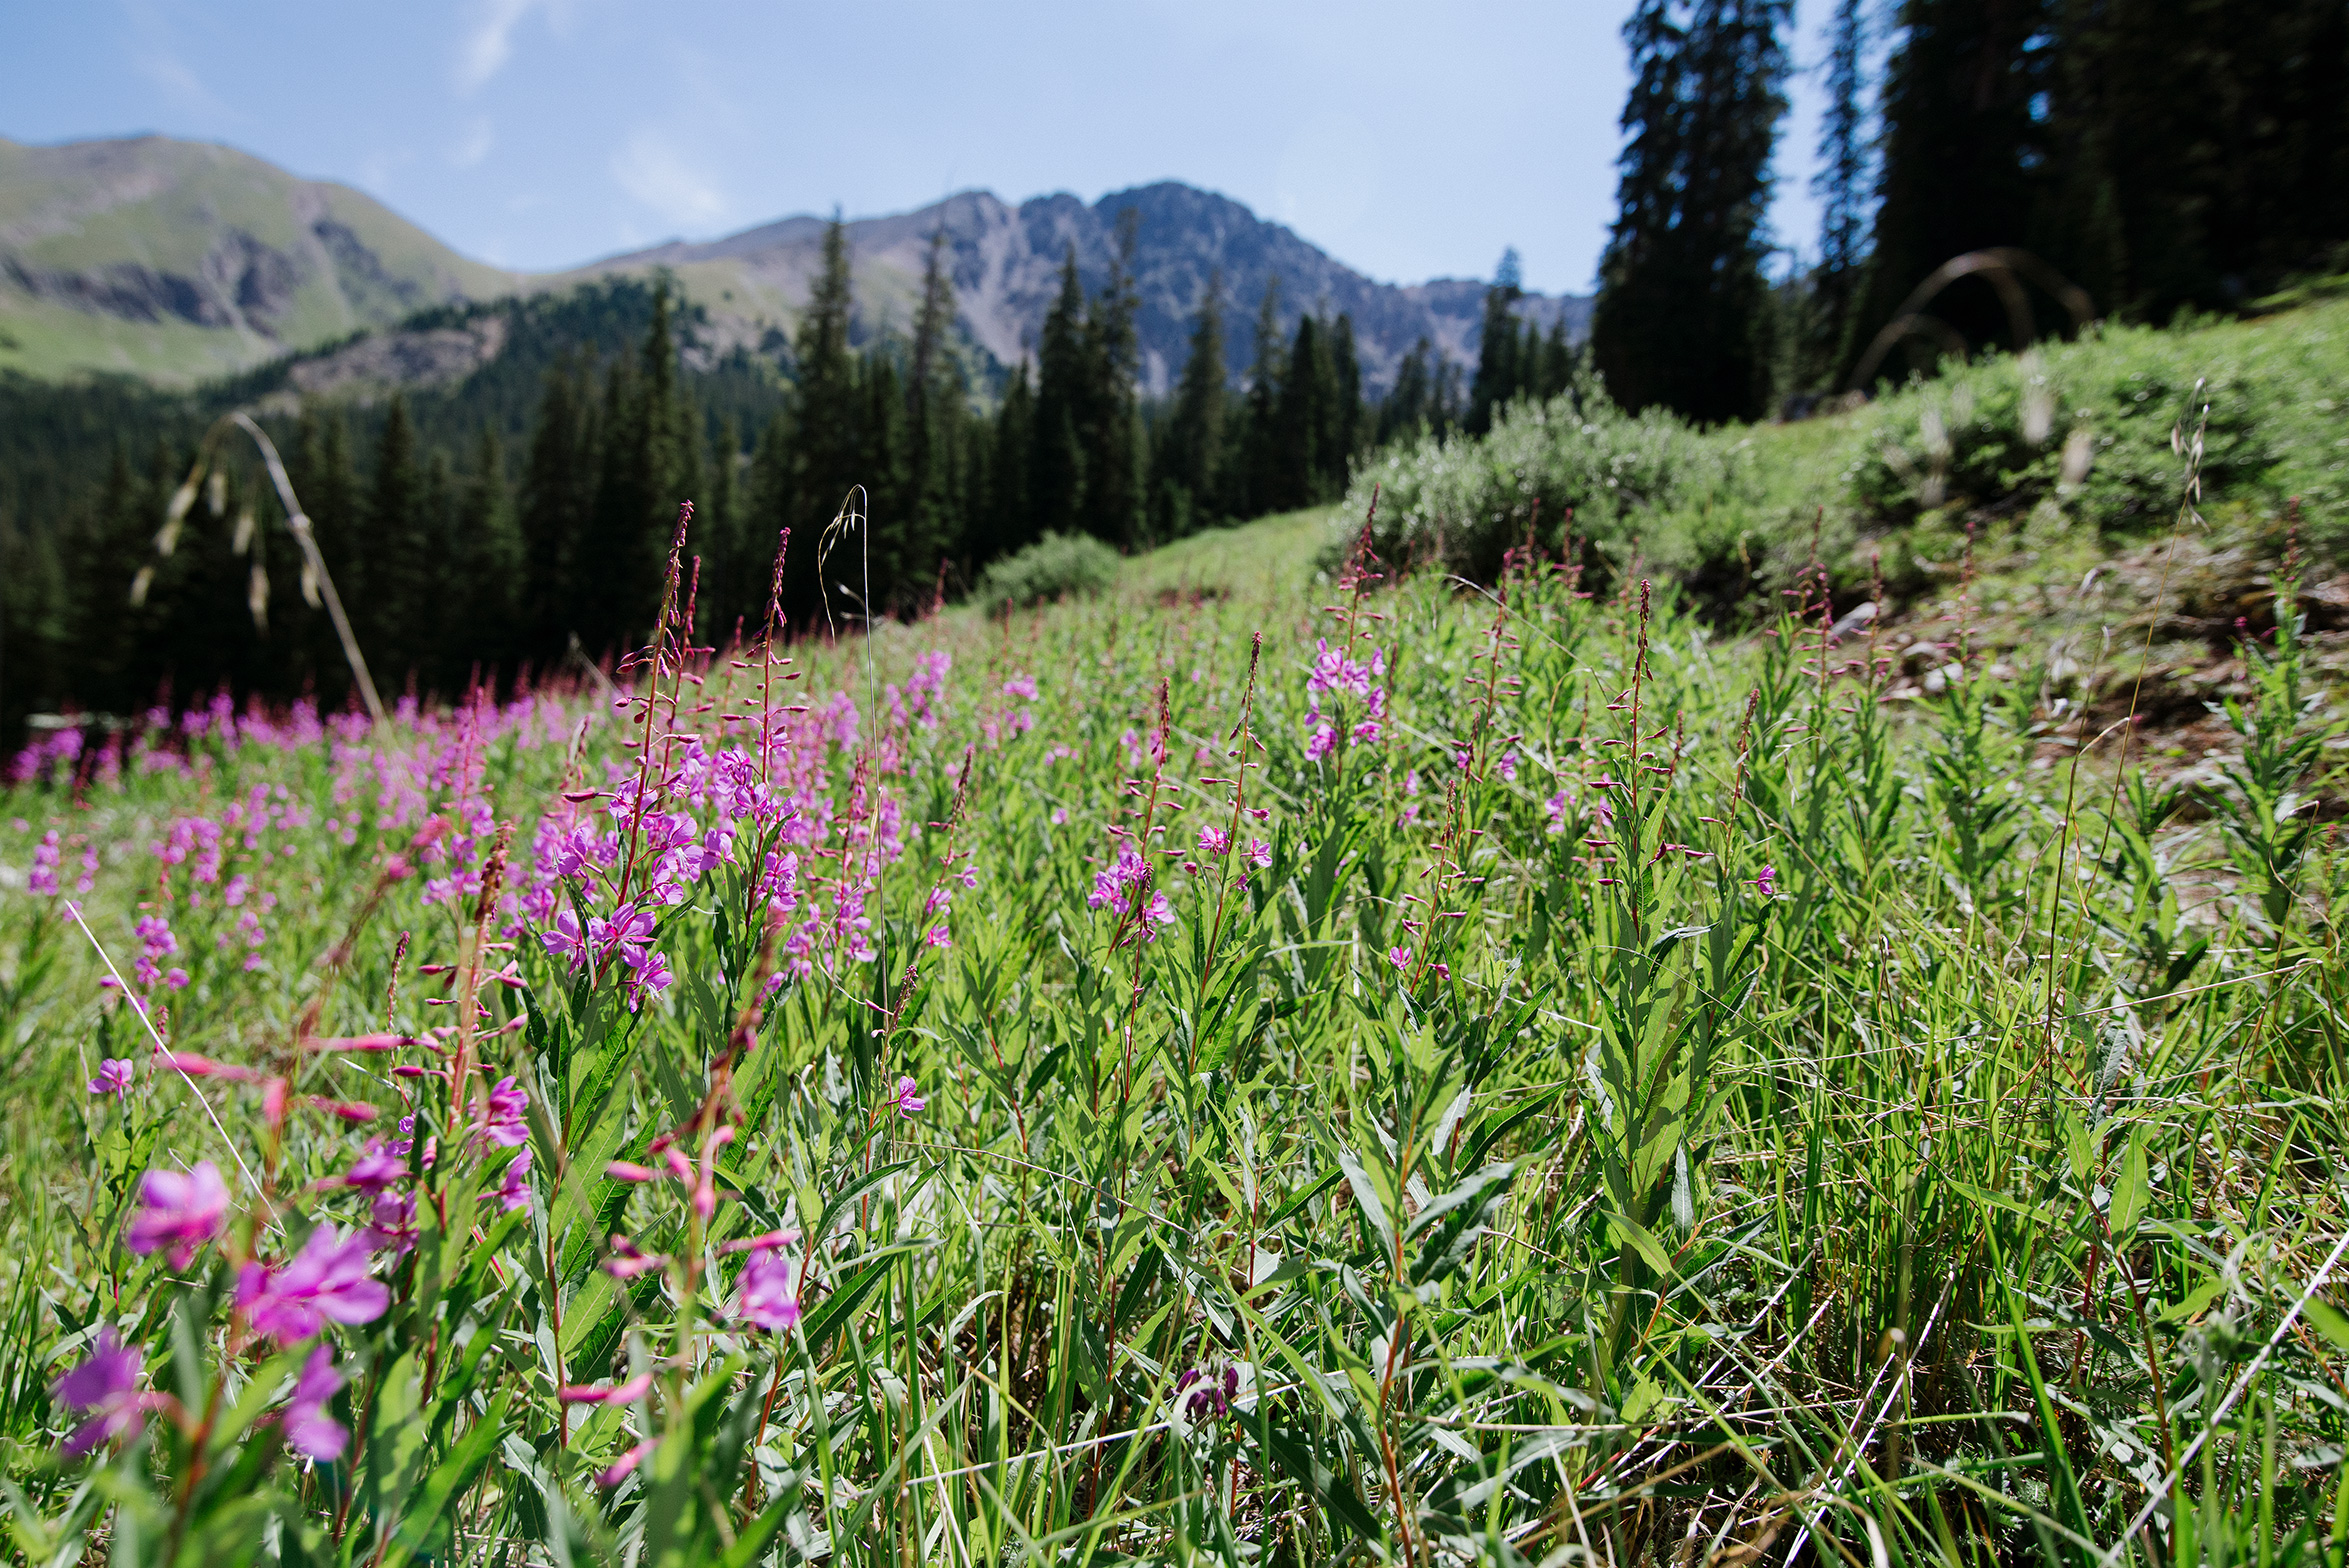 Wildflowers at Arapahoe Basin